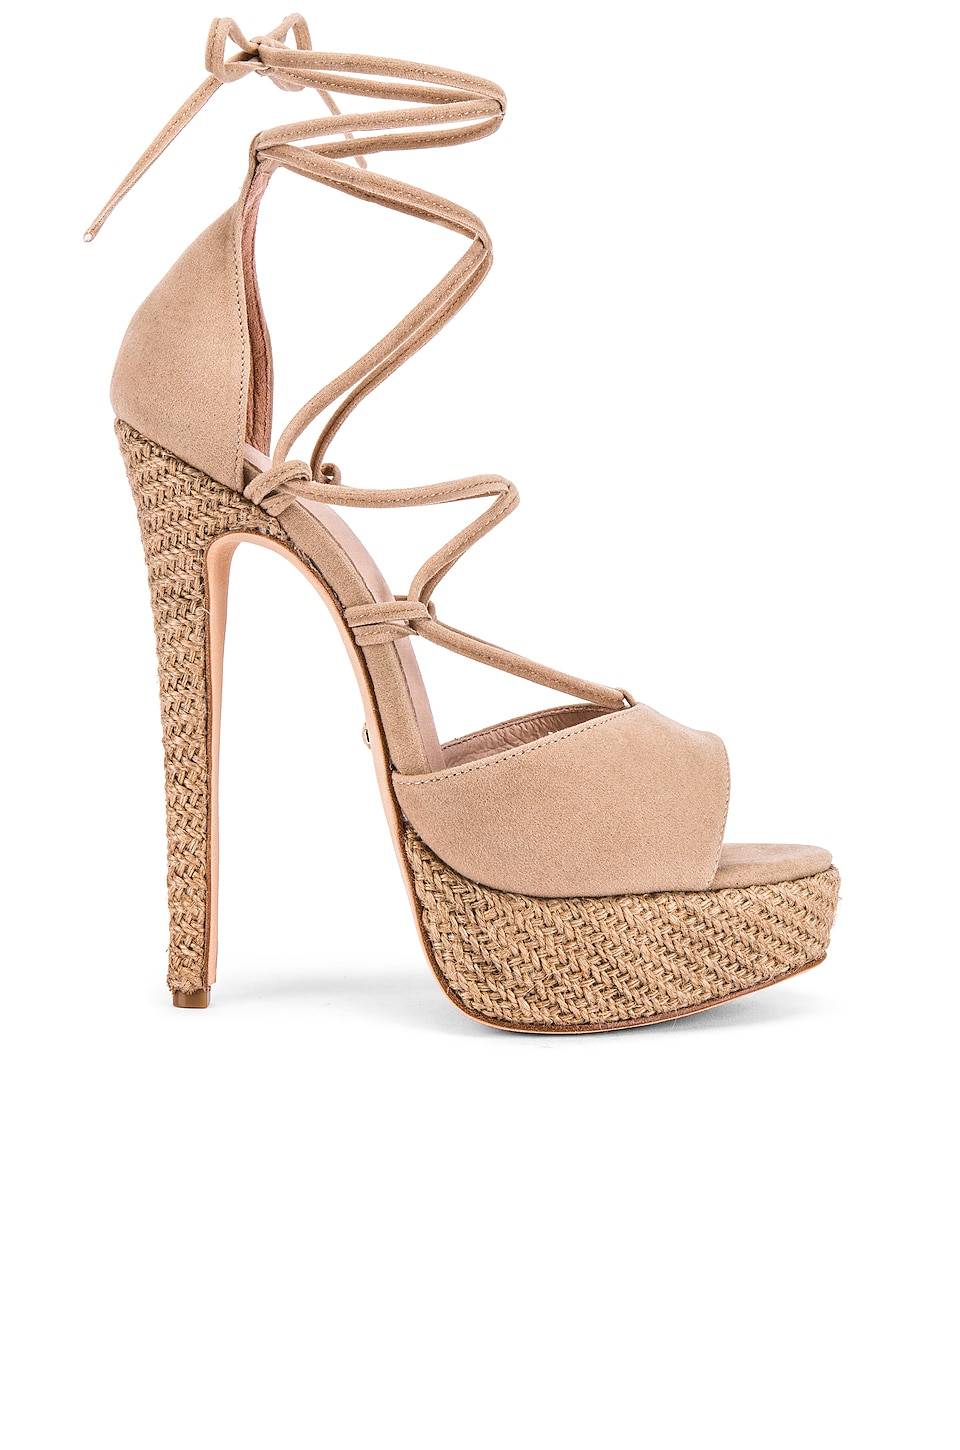 RAYE Shiloh Heel in Tan